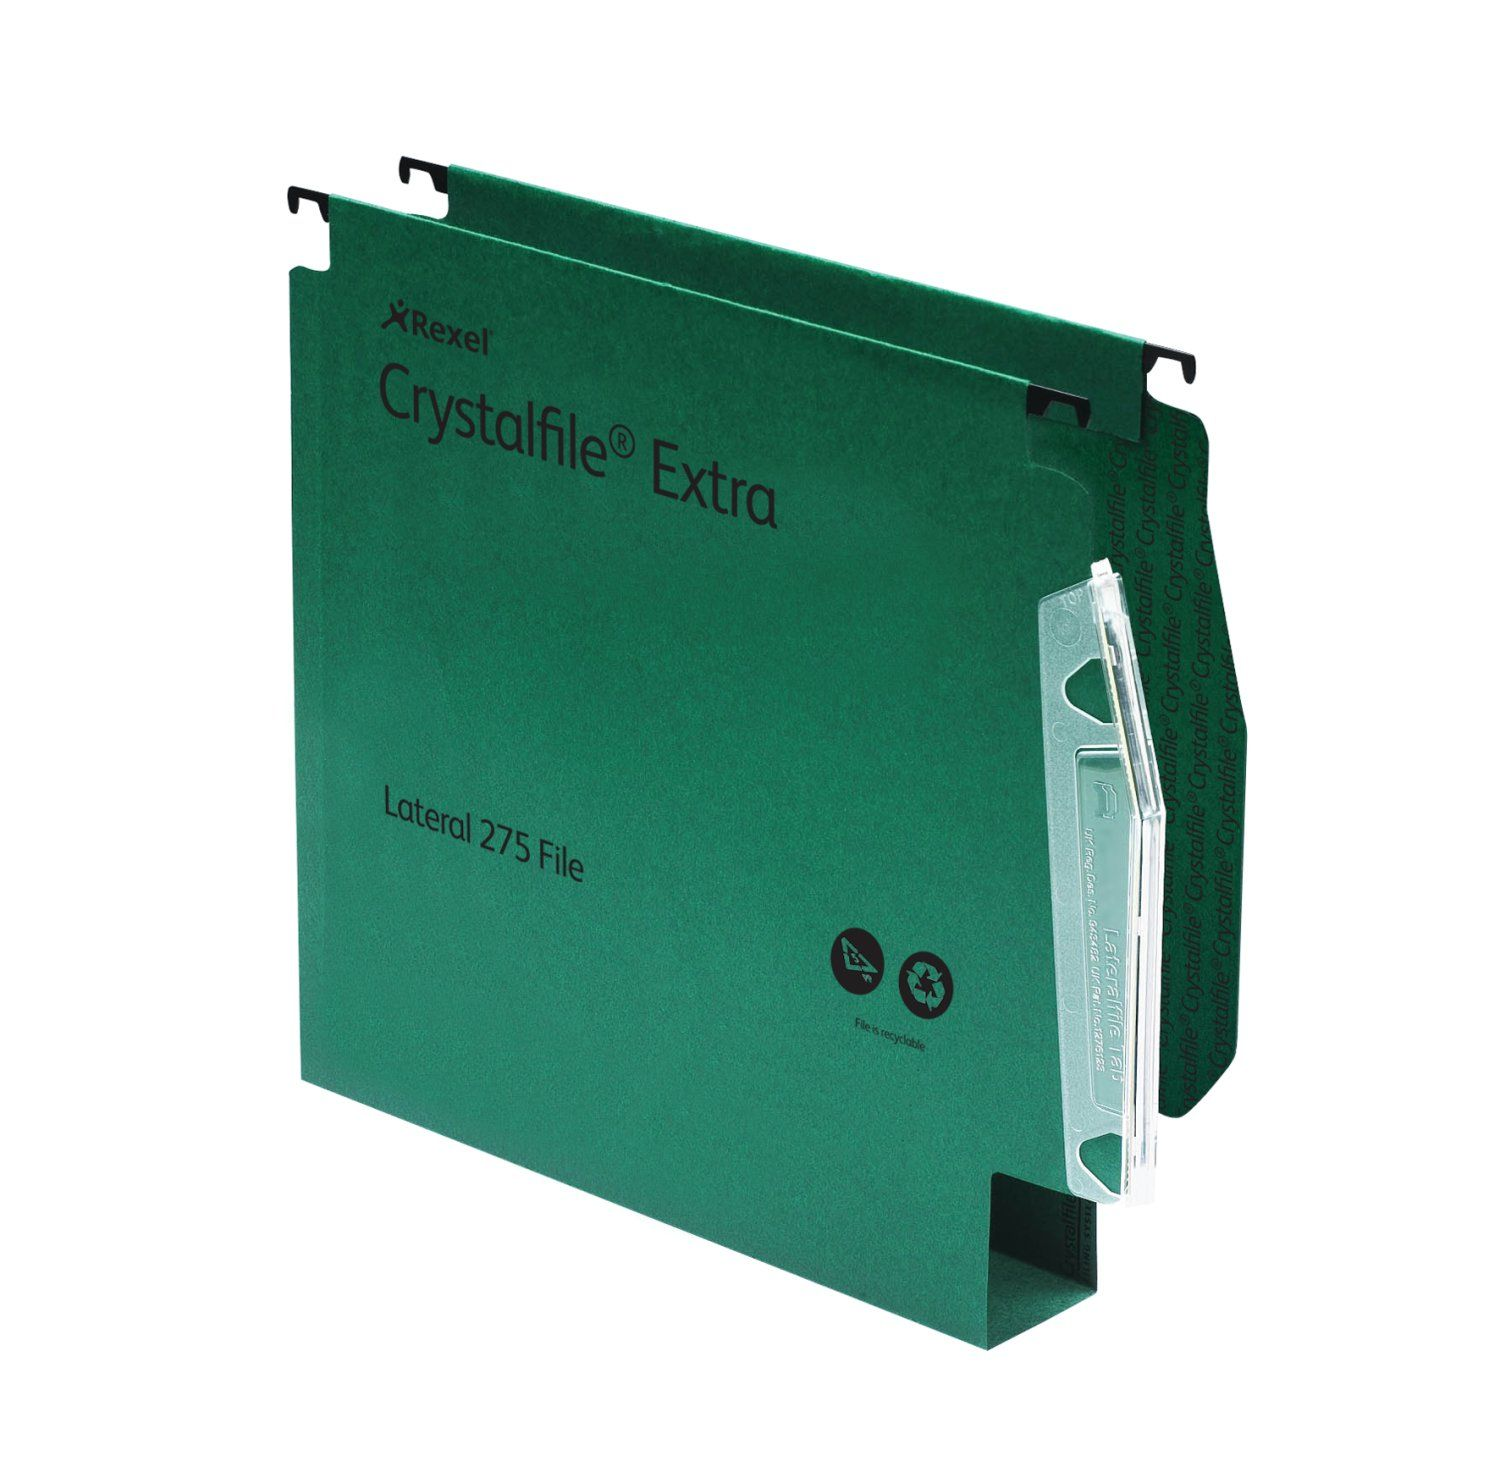 Rexel Crystalfile Extra Lateral File 275 PP 50mm Green PK25